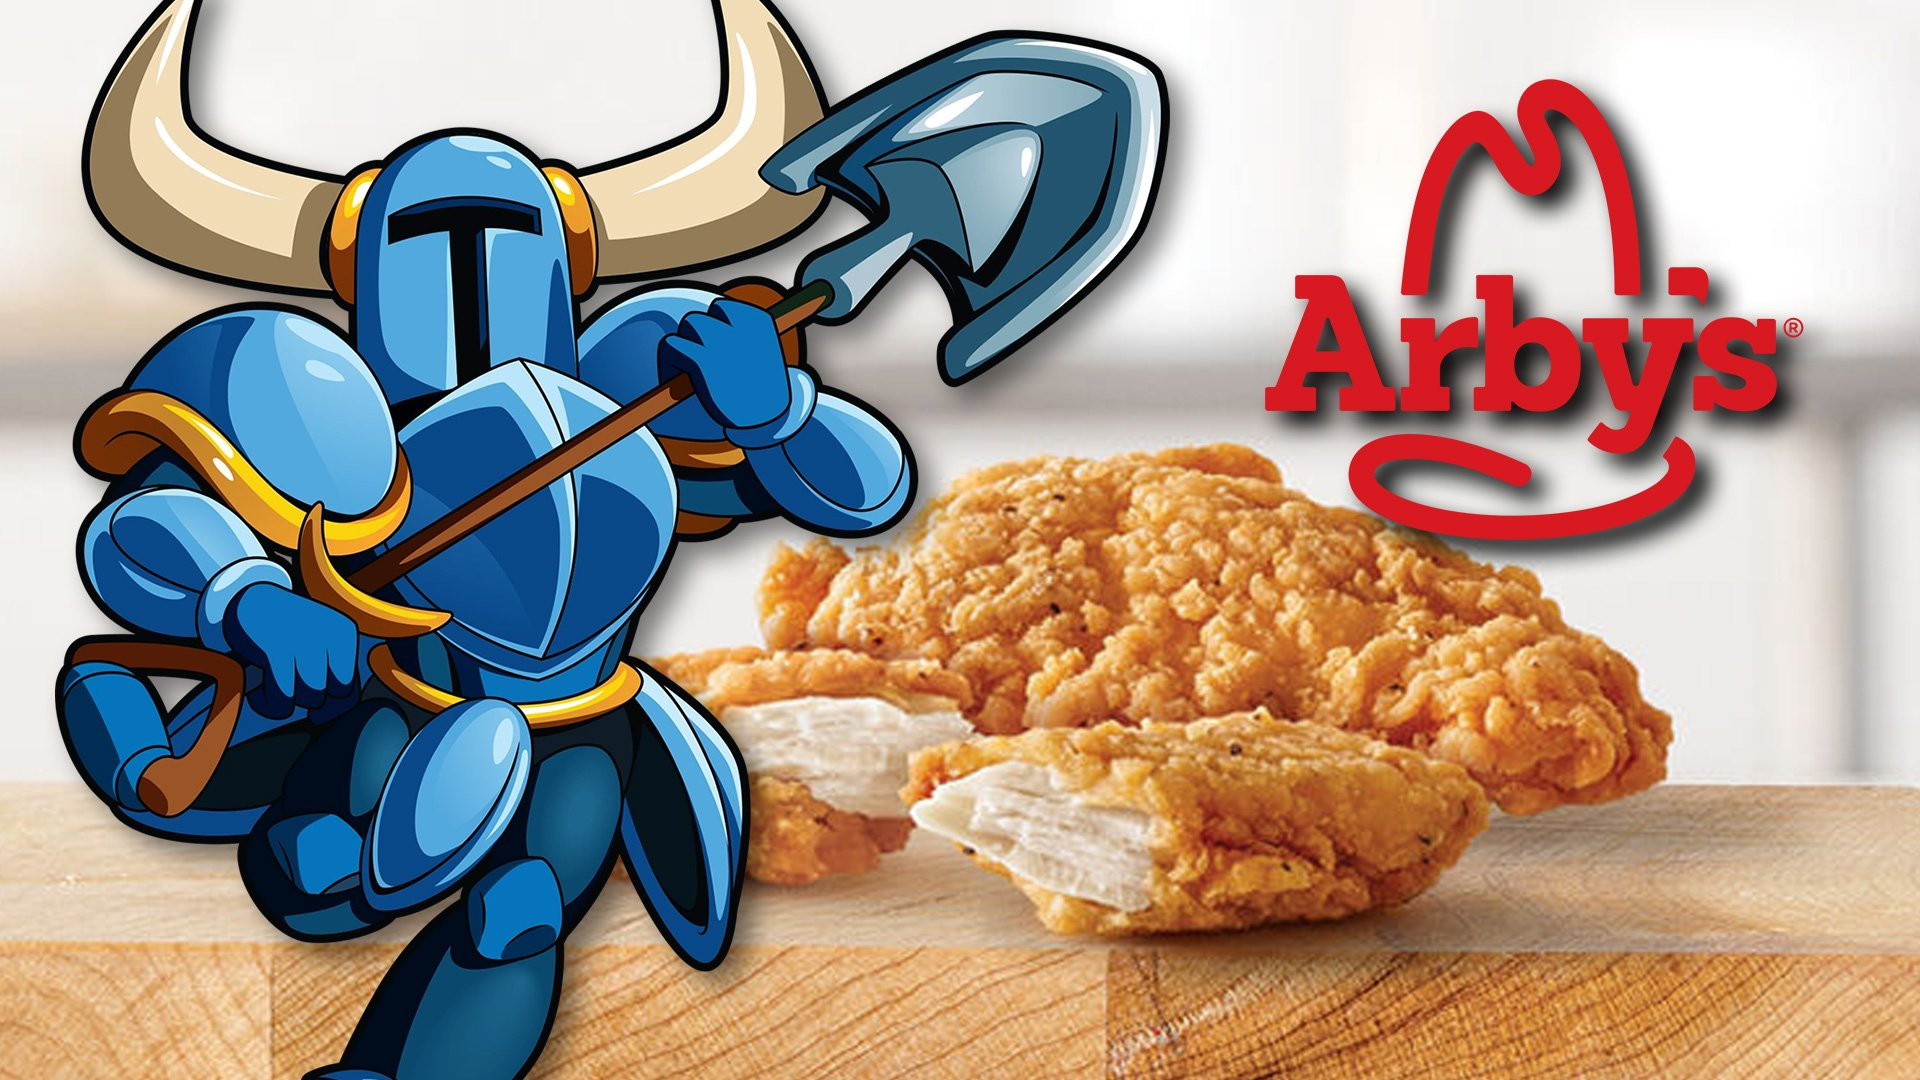 Shovel Knight toys headed to Arby's - Nintendo Wire